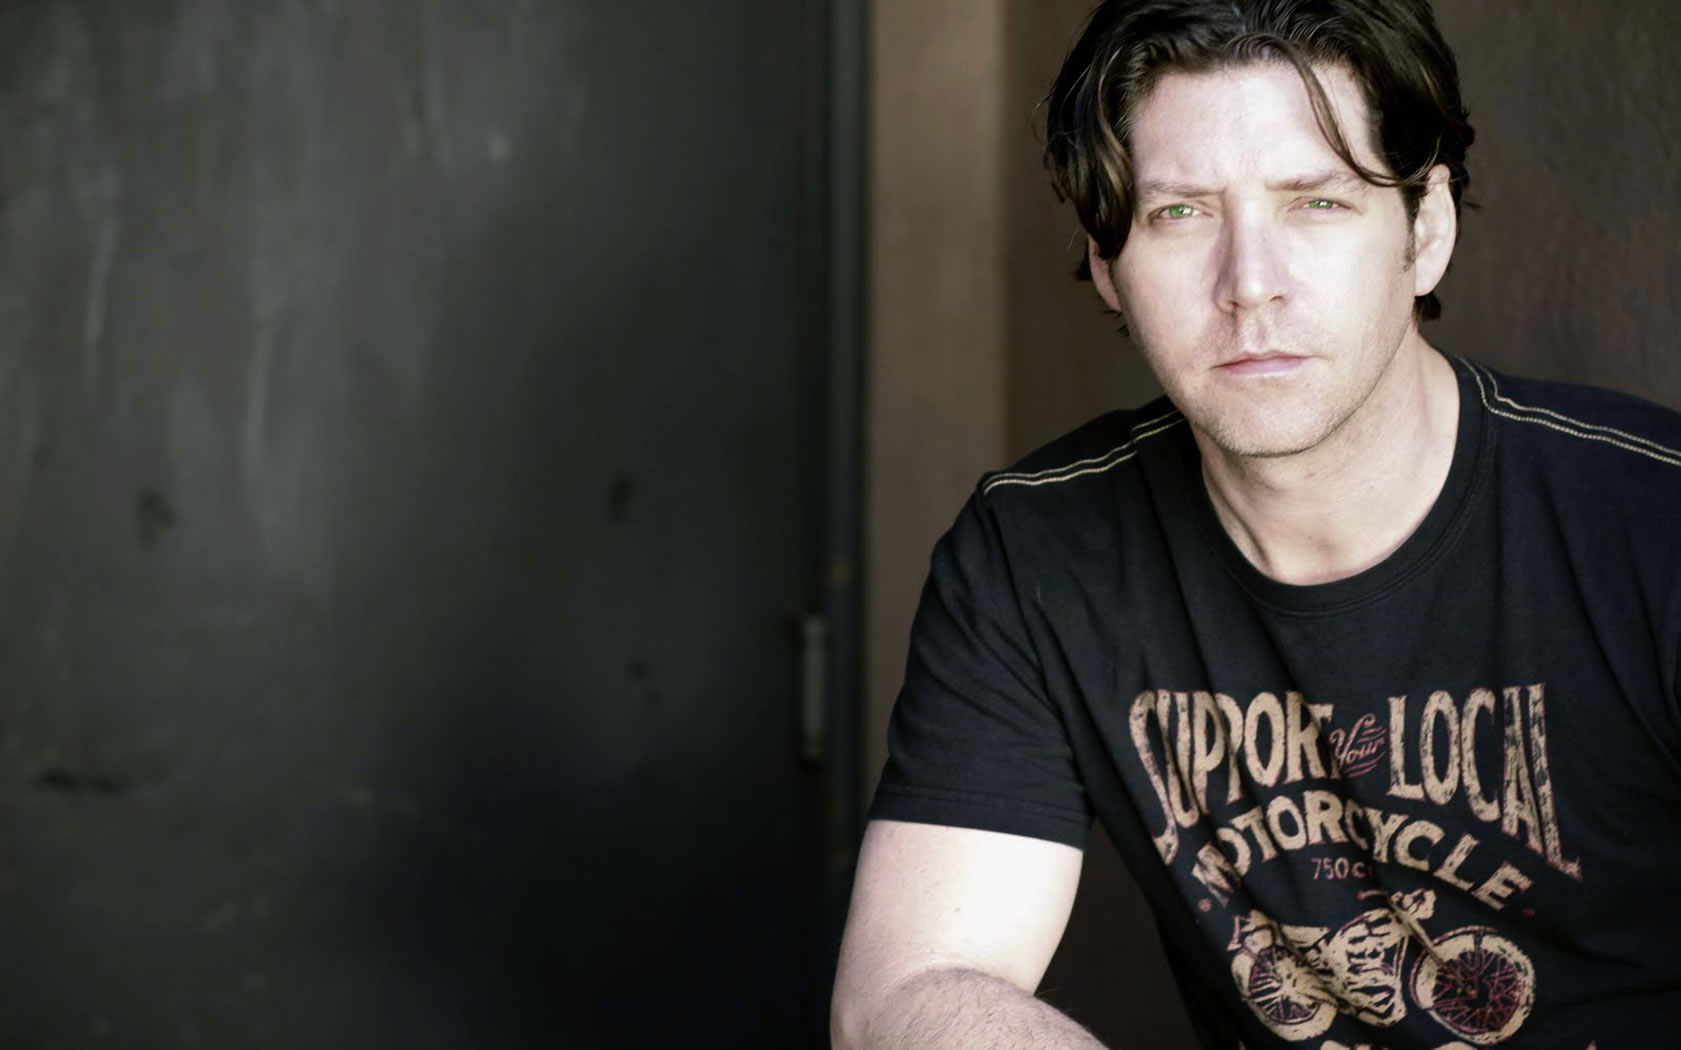 James Barbour Sells Out at Birdland